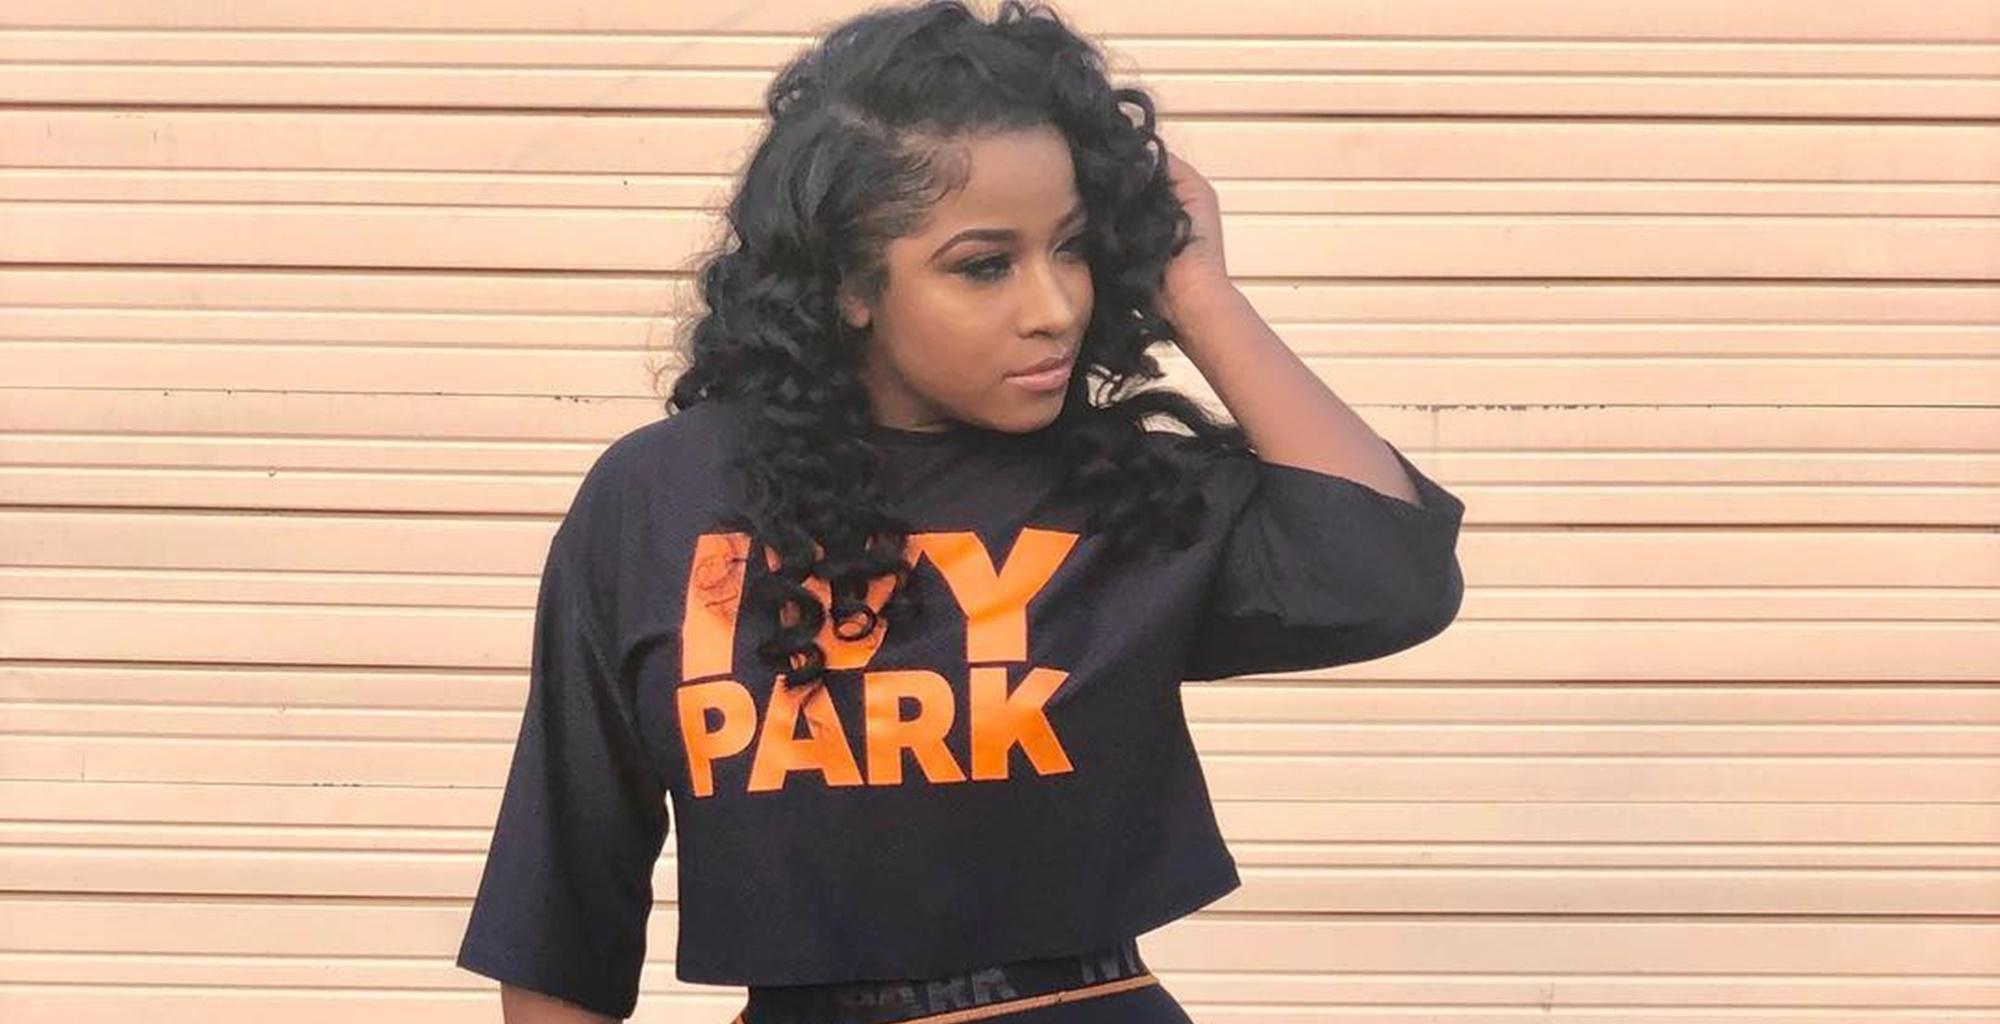 Toya Johnson Attends Tammy Rivera's Listening Party - See The Pics